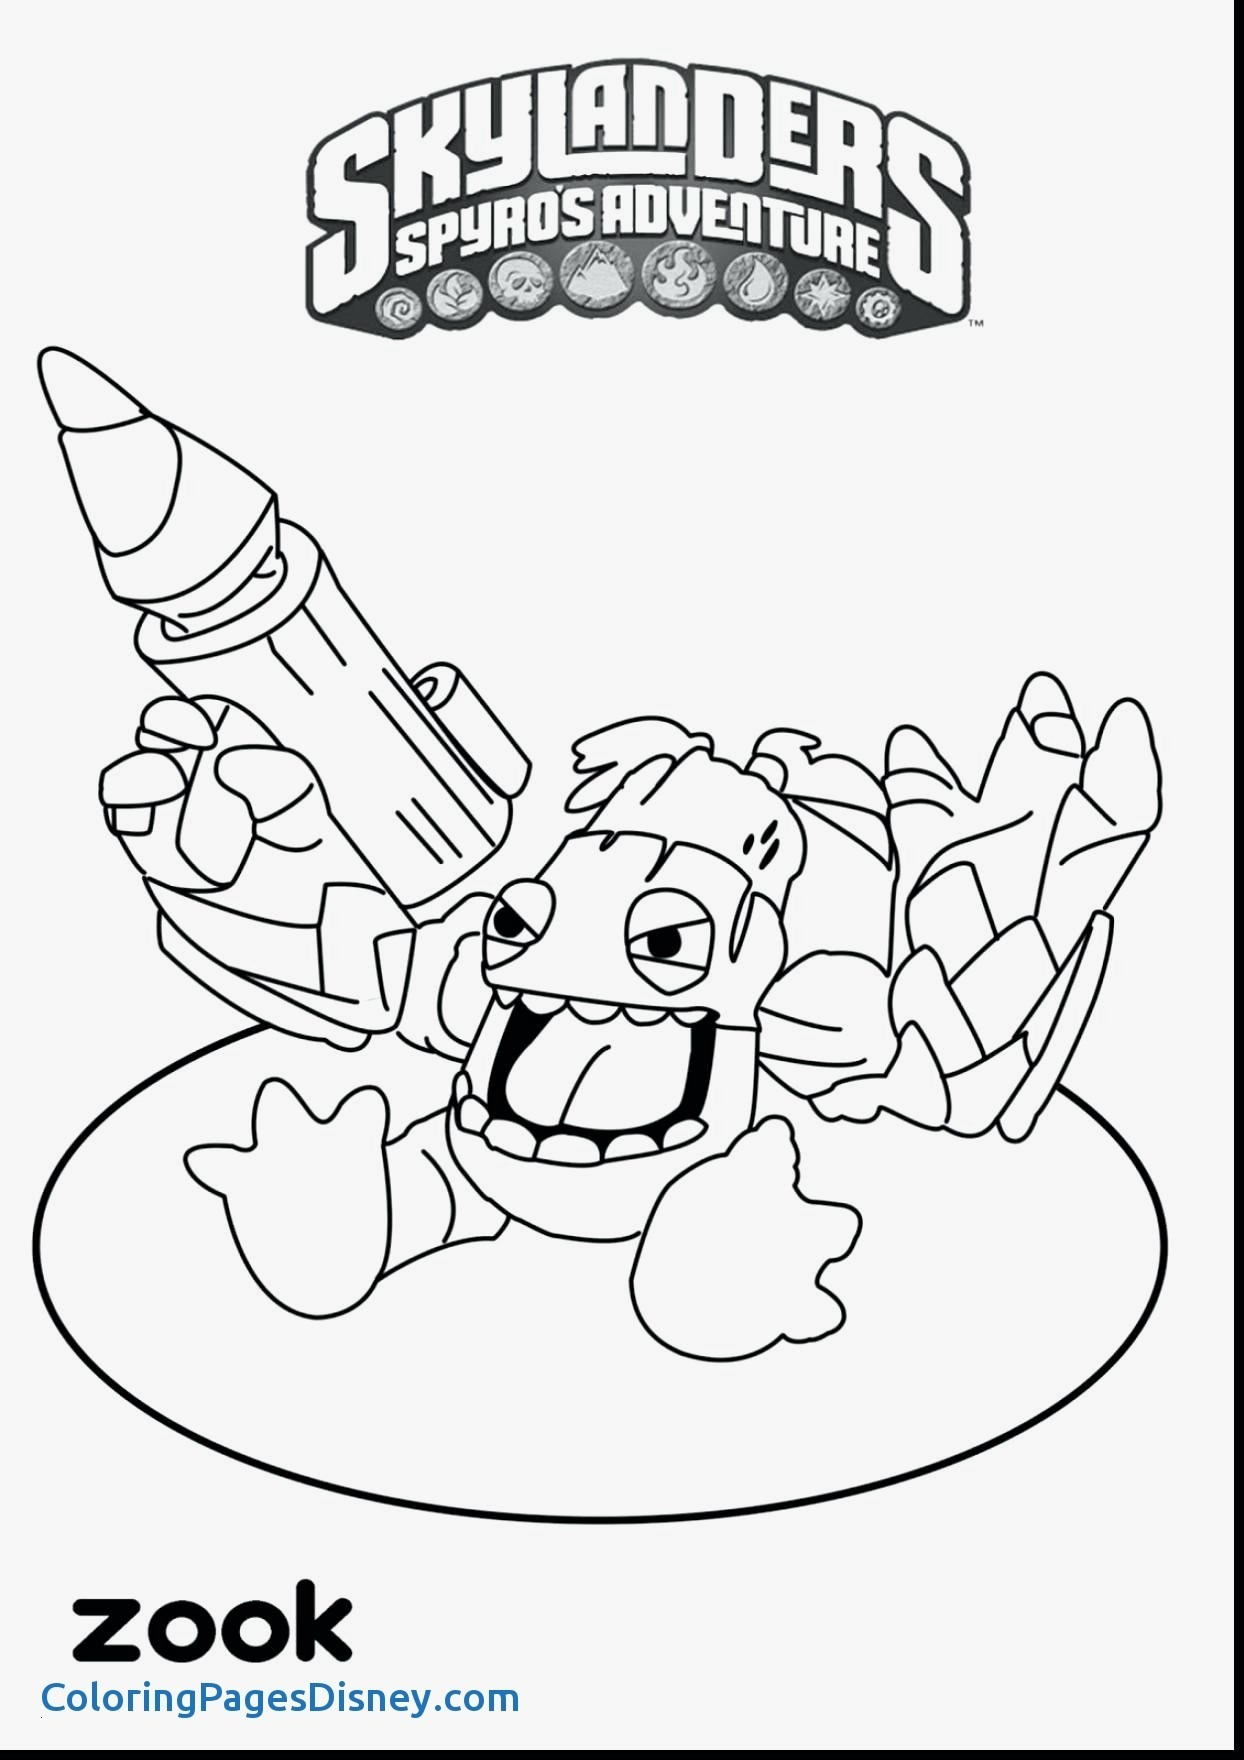 Free Ninja Coloring Pages  to Print 16q - Free Download